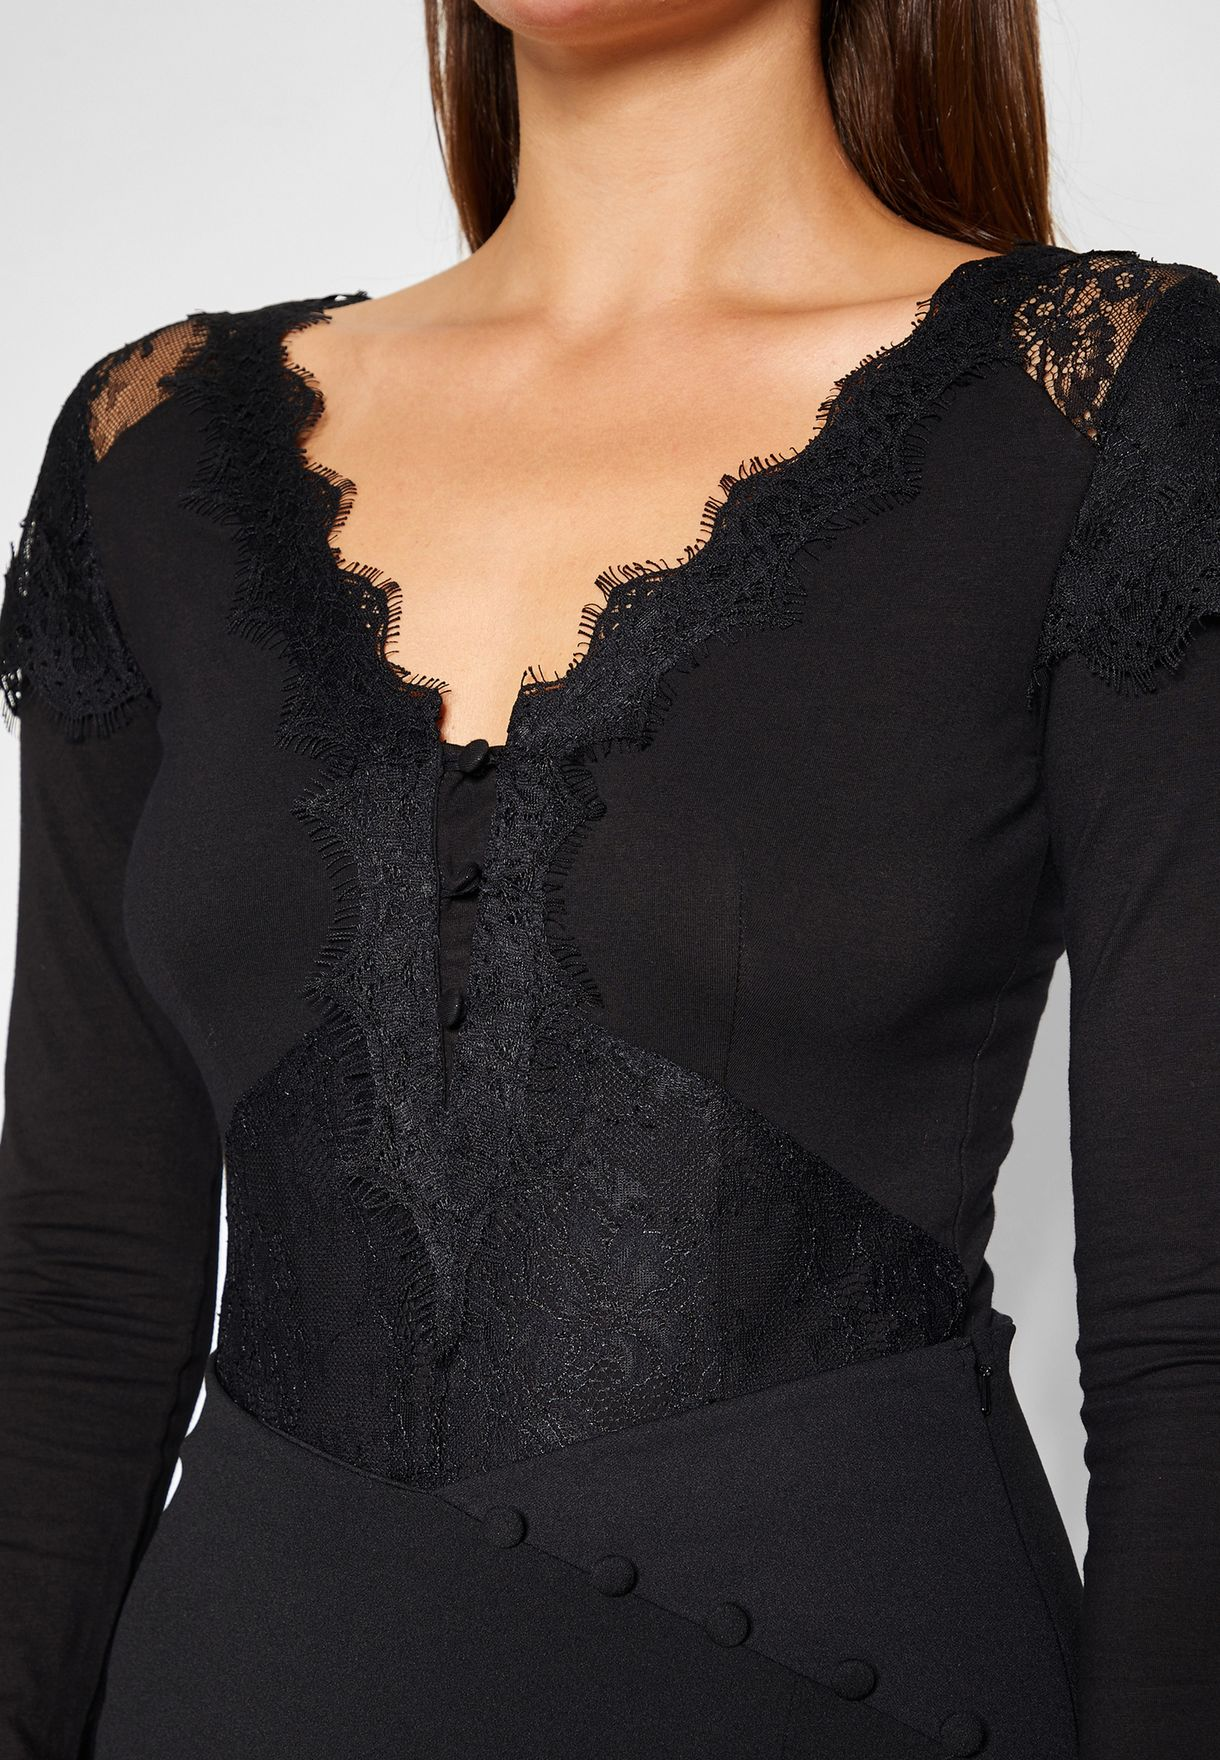 Buy Lost Ink Black Long Sleeve Scallop Detail Body For Women, Uae Lo956at29jdi